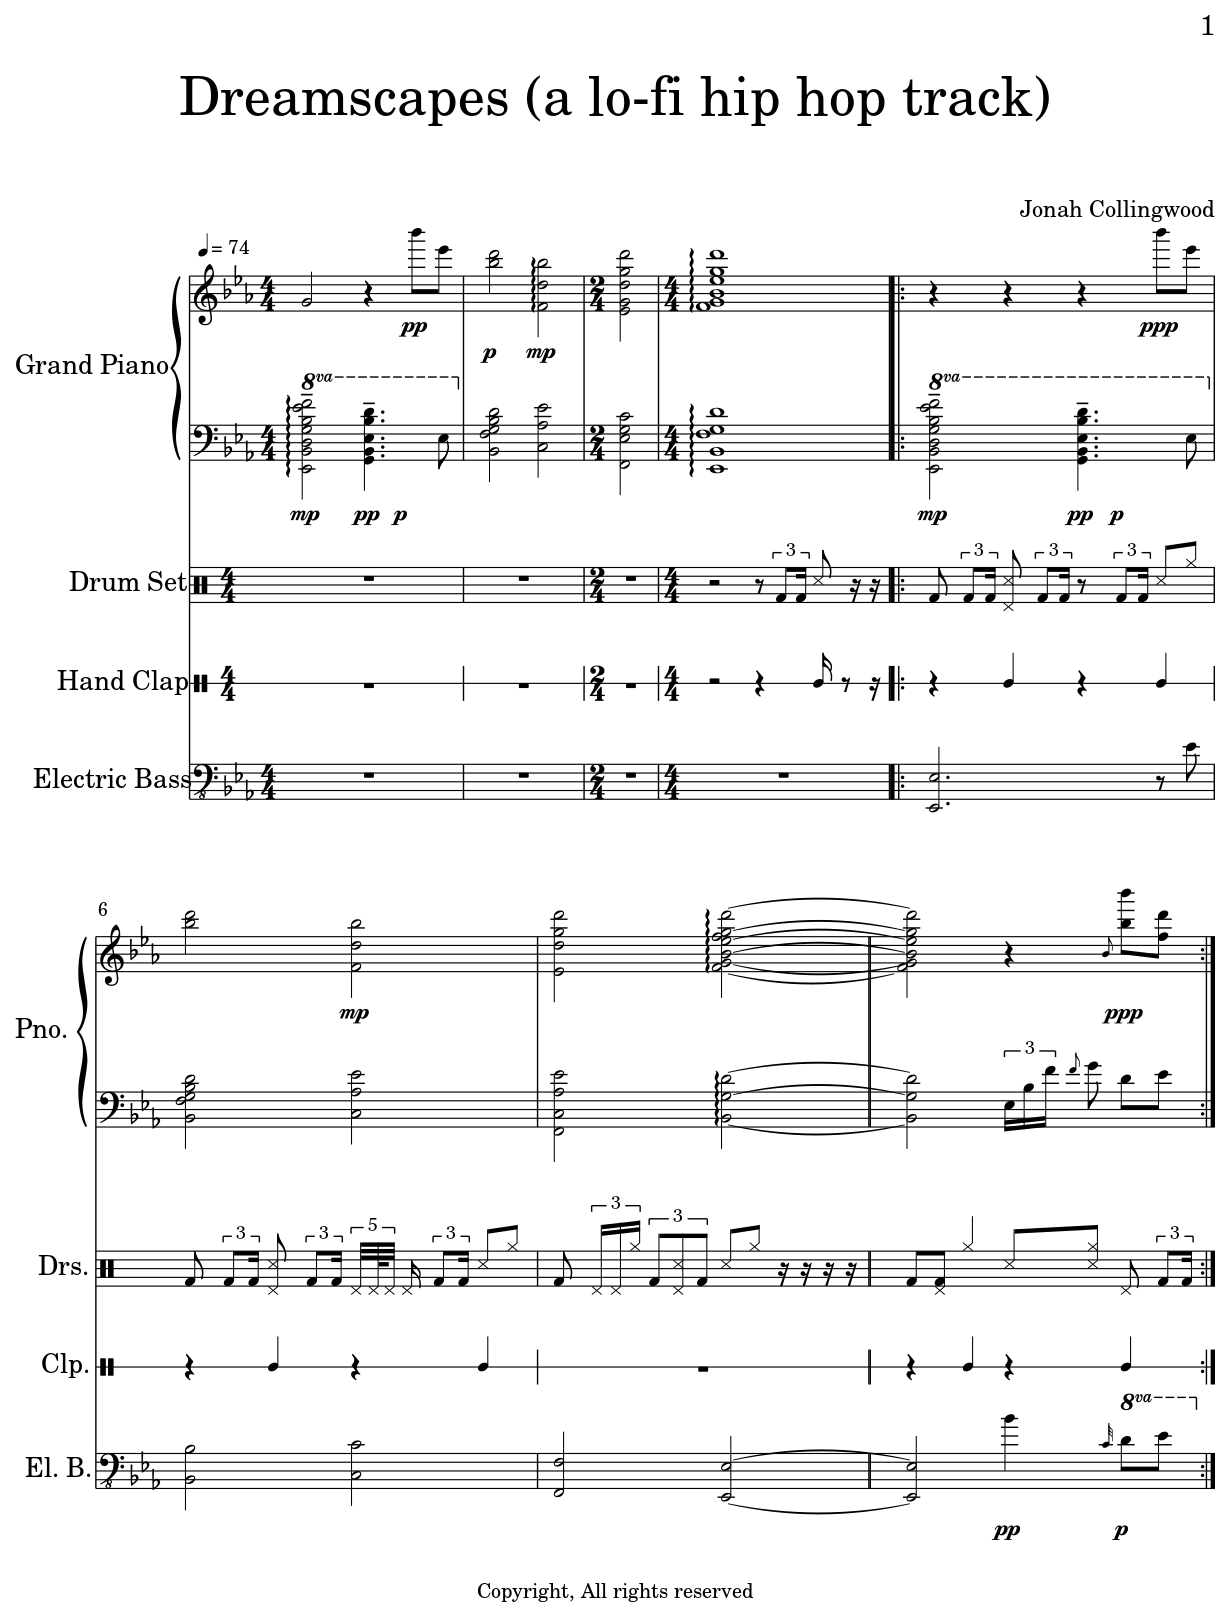 dreamscapes a lo fi hip hop track sheet music for piano drum set hand clap electric bass. Black Bedroom Furniture Sets. Home Design Ideas